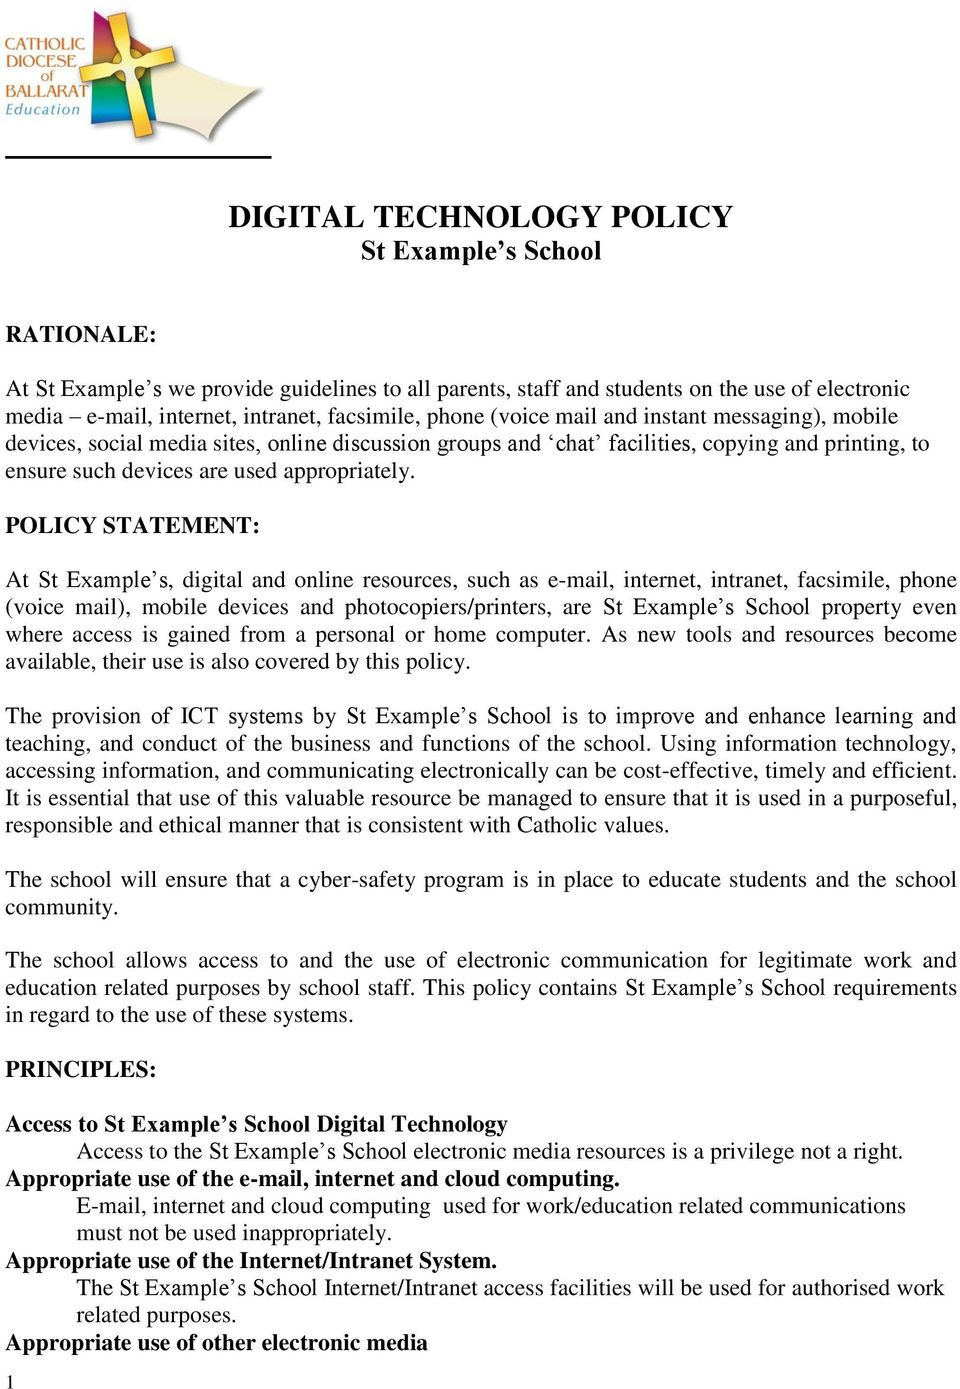 POLICY STATEMENT: At St Example s, digital and online resources, such as e-mail, internet, intranet, facsimile, phone (voice mail), mobile devices and photocopiers/printers, are St Example s School